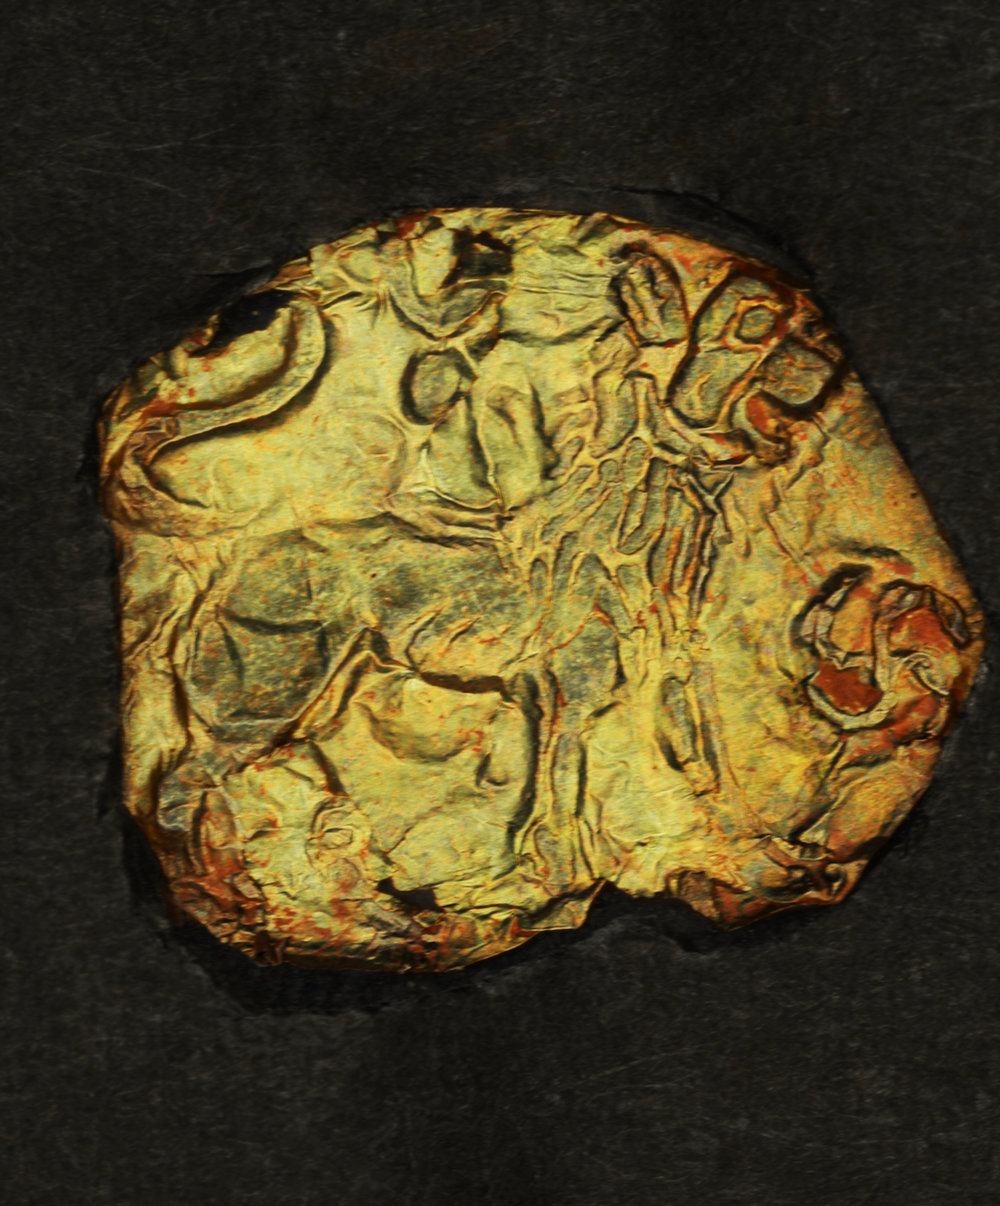 RTI IMAGE OF SINGLE GOLD LEAF DISC